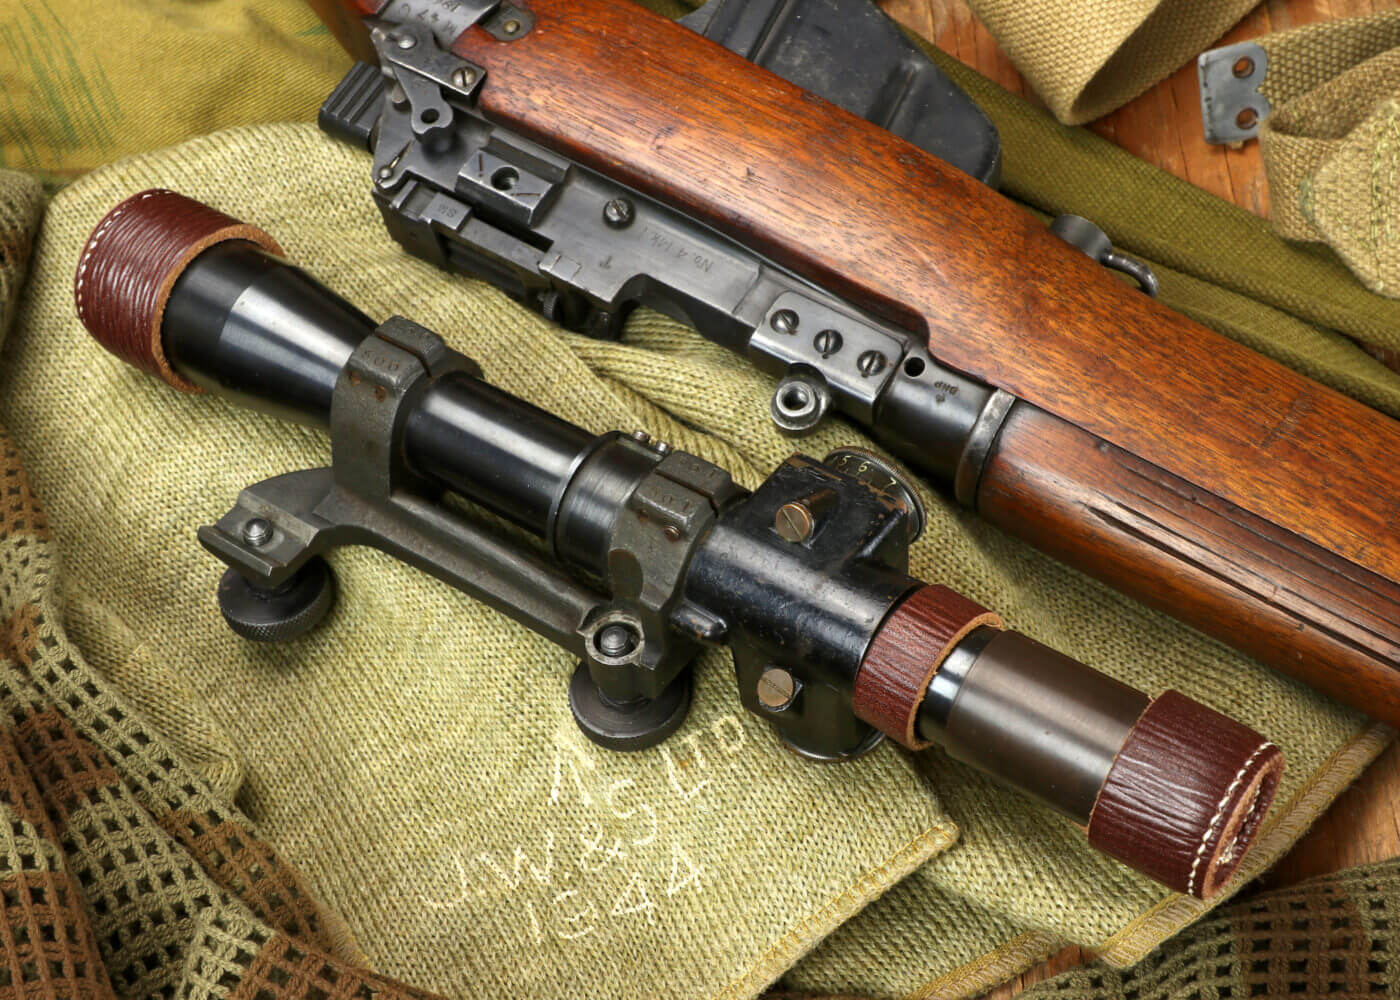 Enfield No. 4 (T) Sniper scope